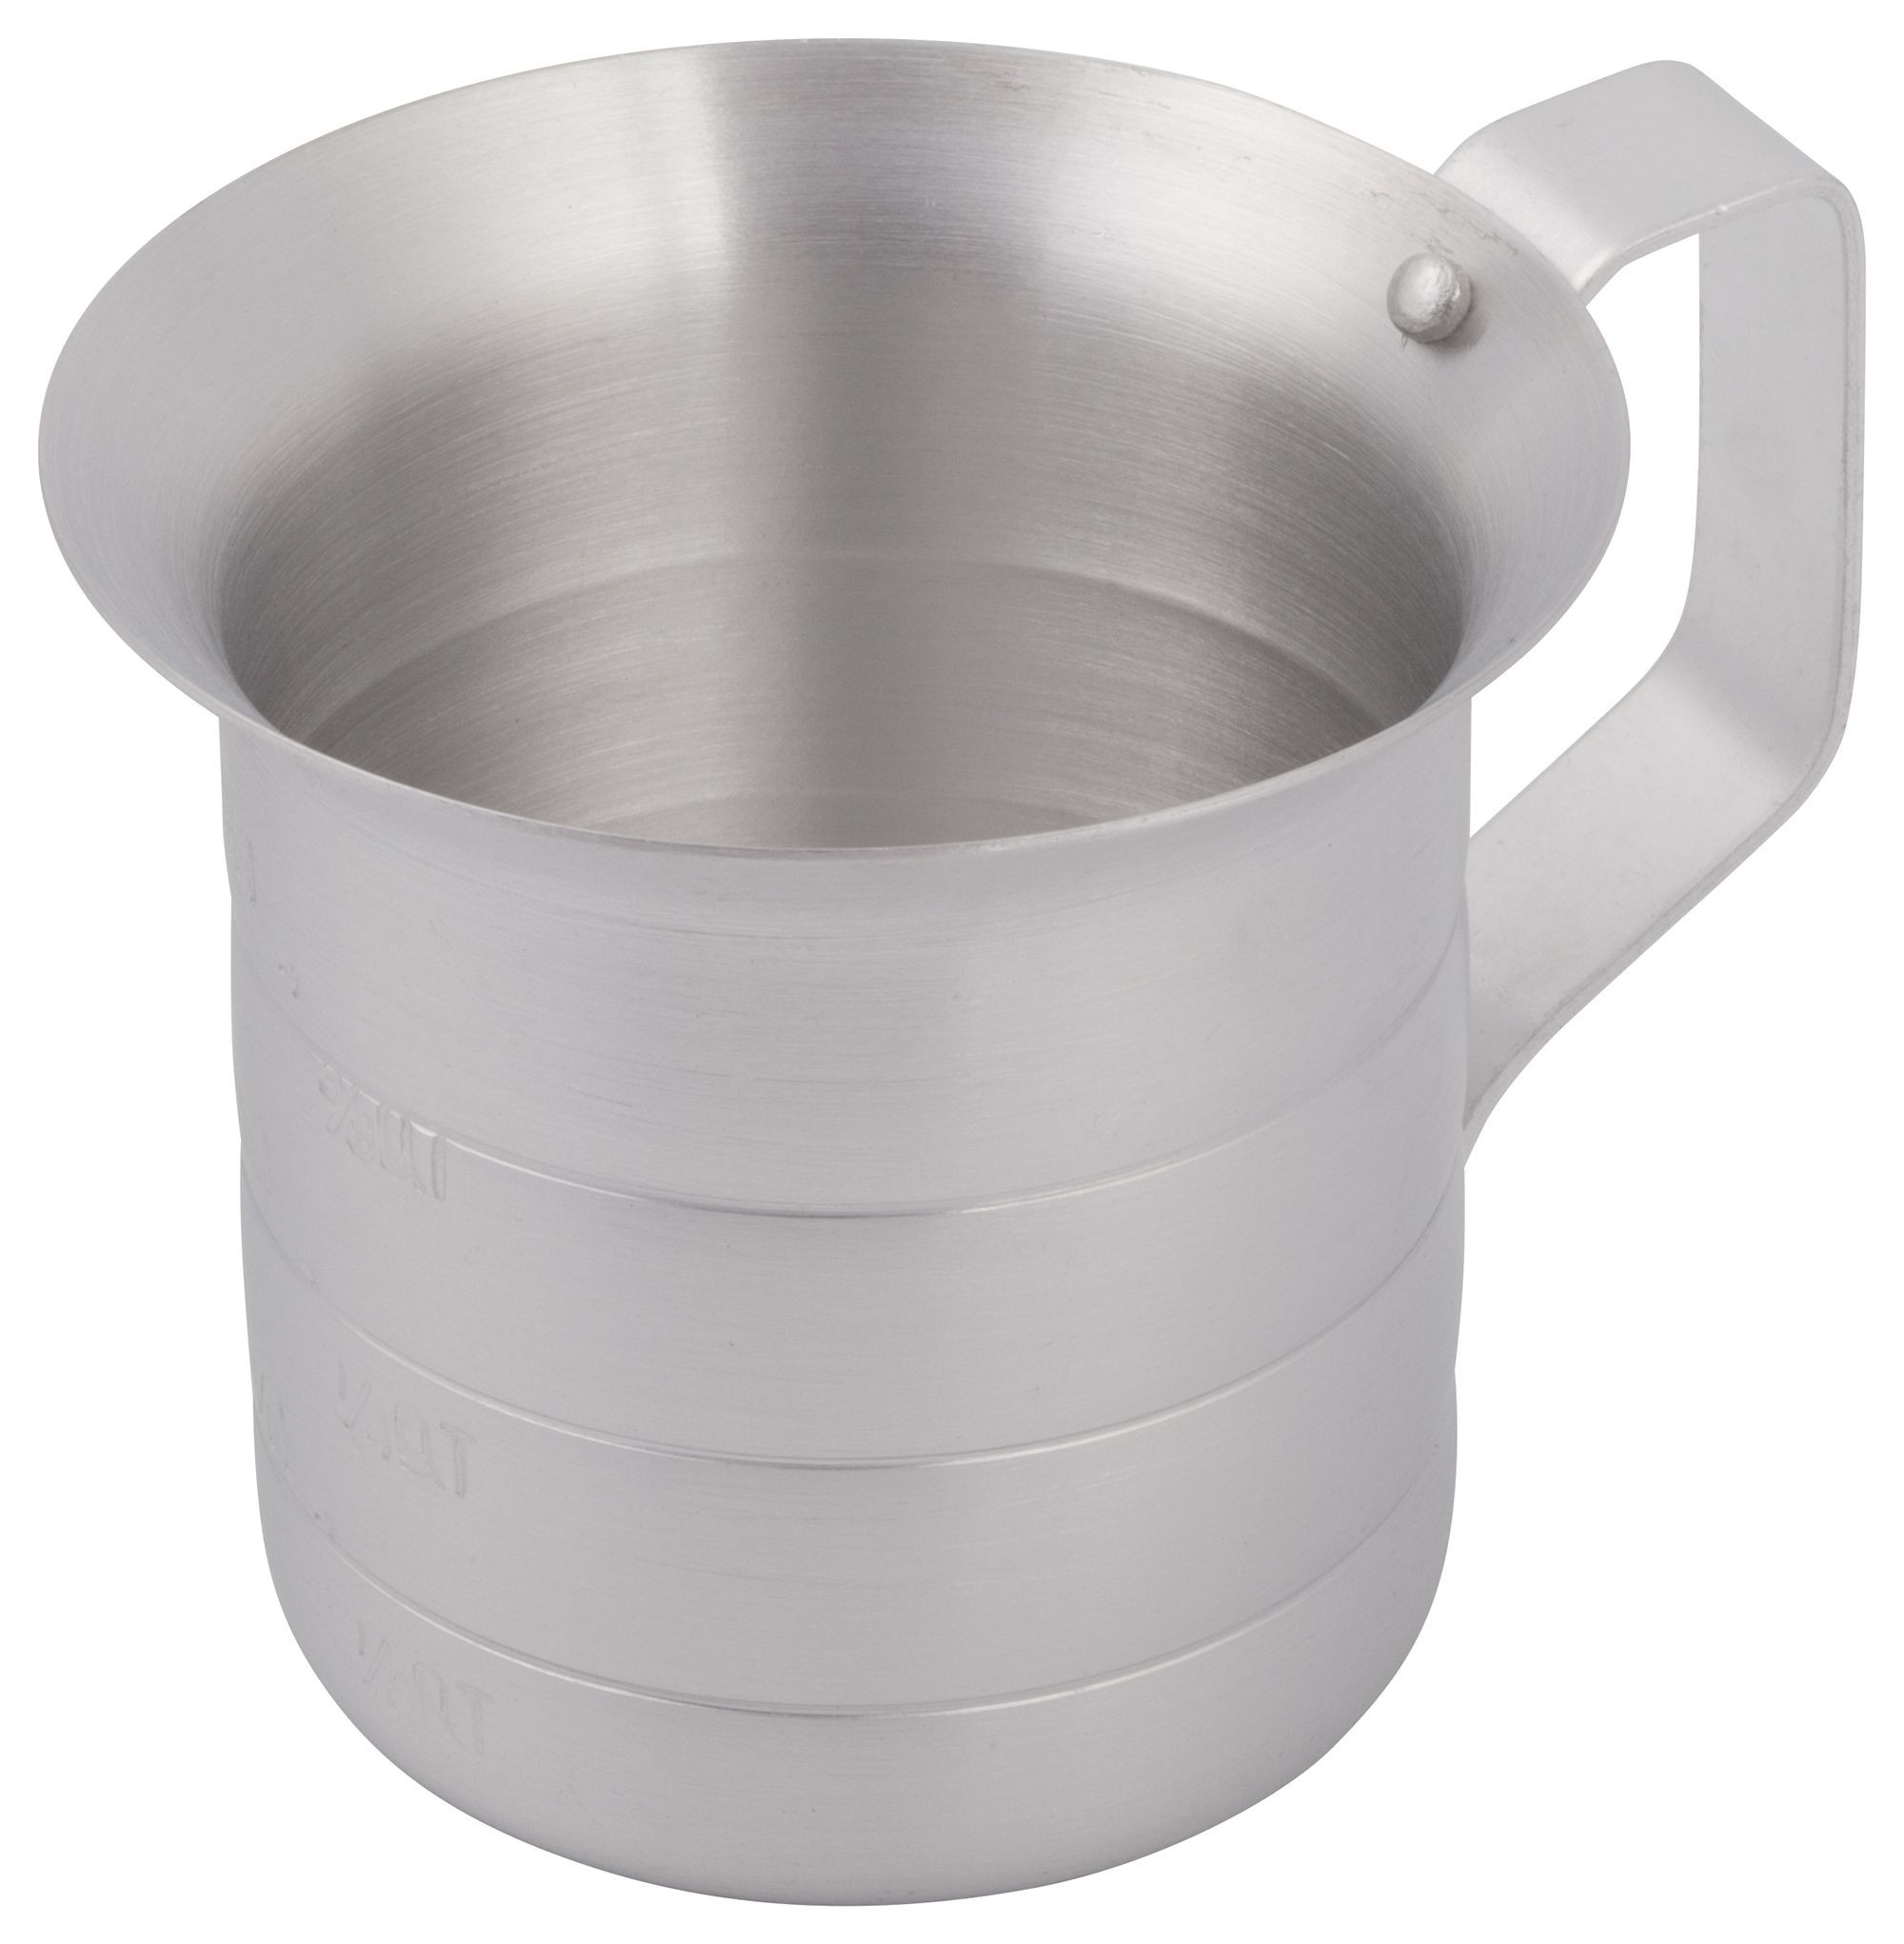 Aluminum Measuring Cup, 1/2-Quart Capacity